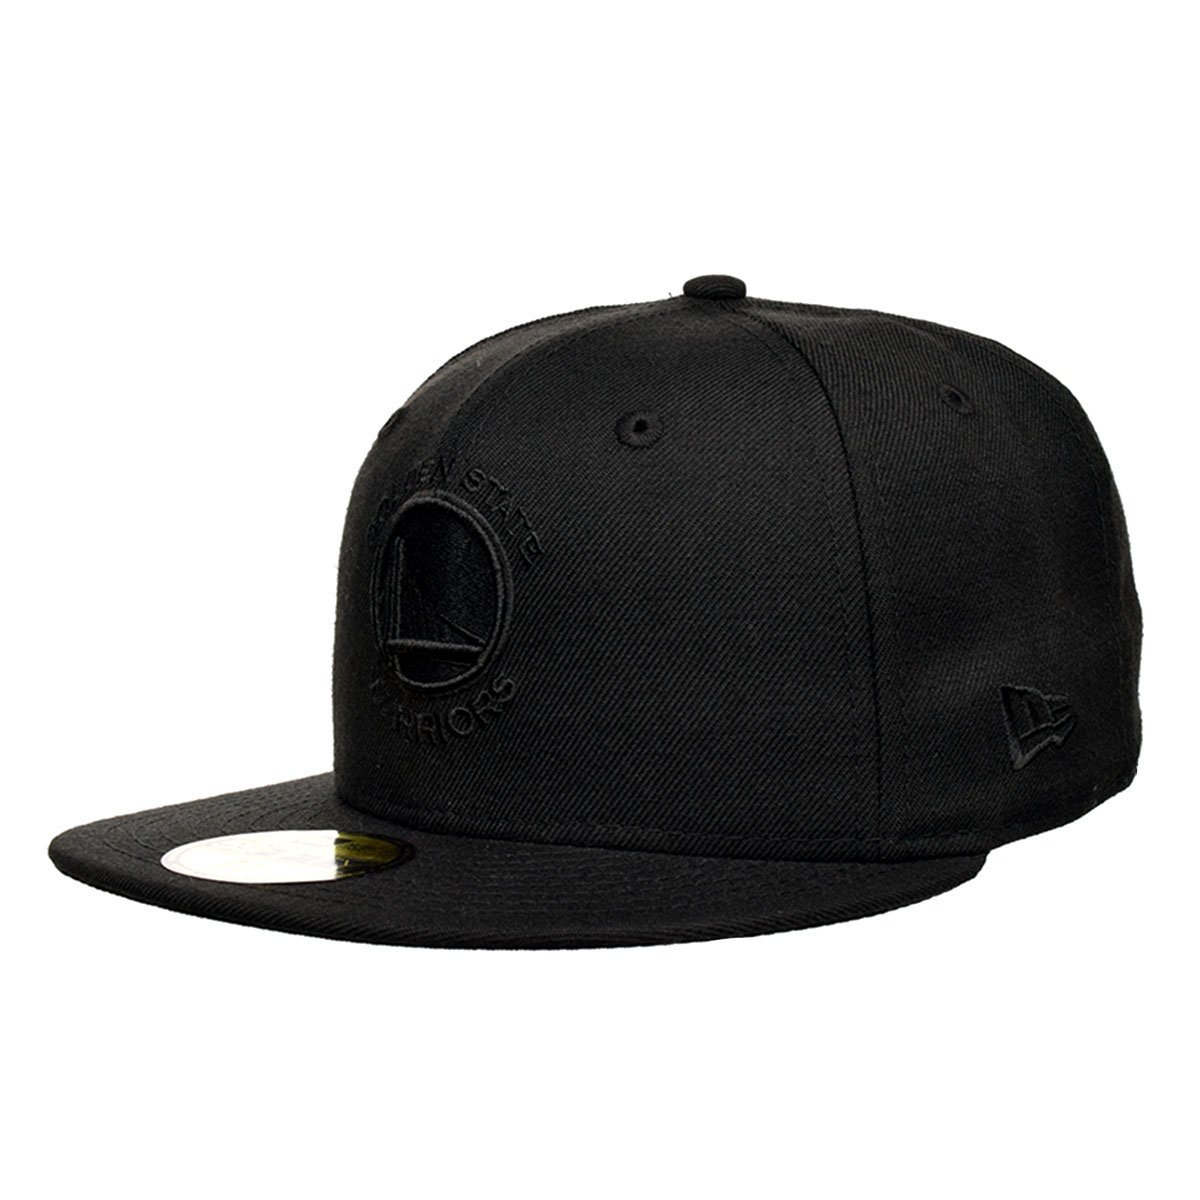 6240e8b0f2d7f Get Quotations · New Era Golden State Warriors Black On Black 59Fifty  Fitted Hat (Black)